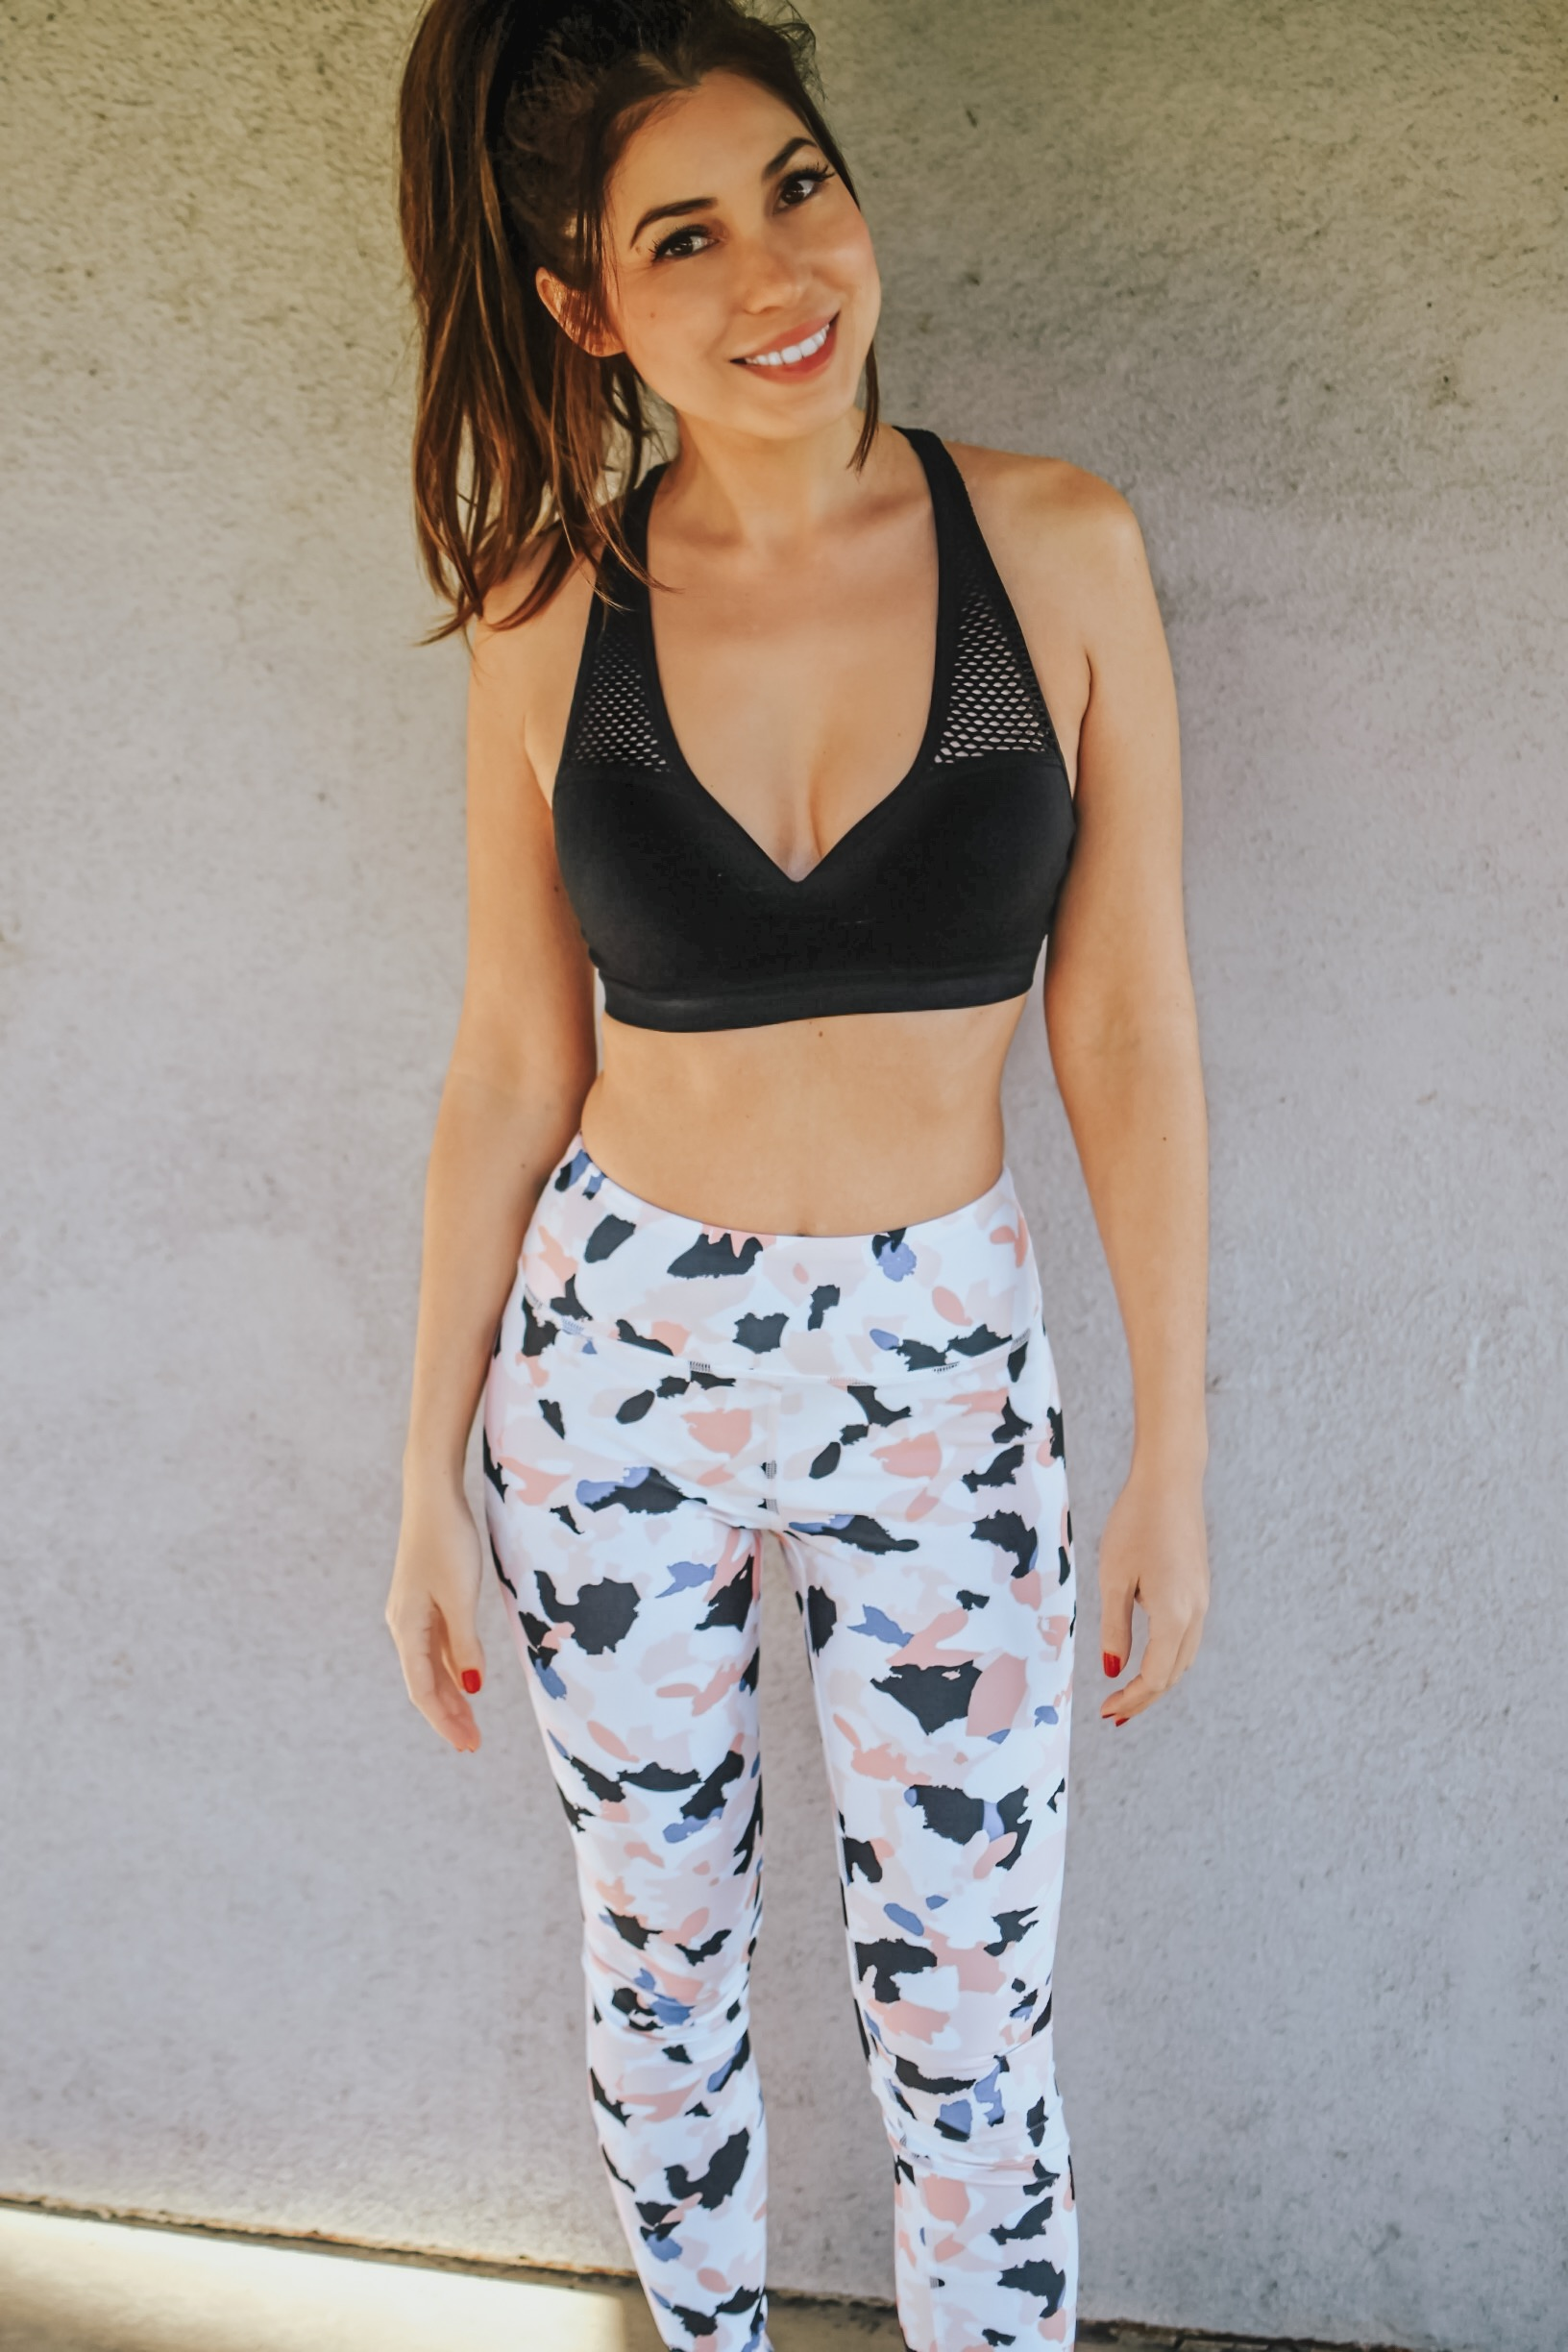 97c47f18c9 Affordable Workout Clothes That Make You Look Cute AF - More Than A ...